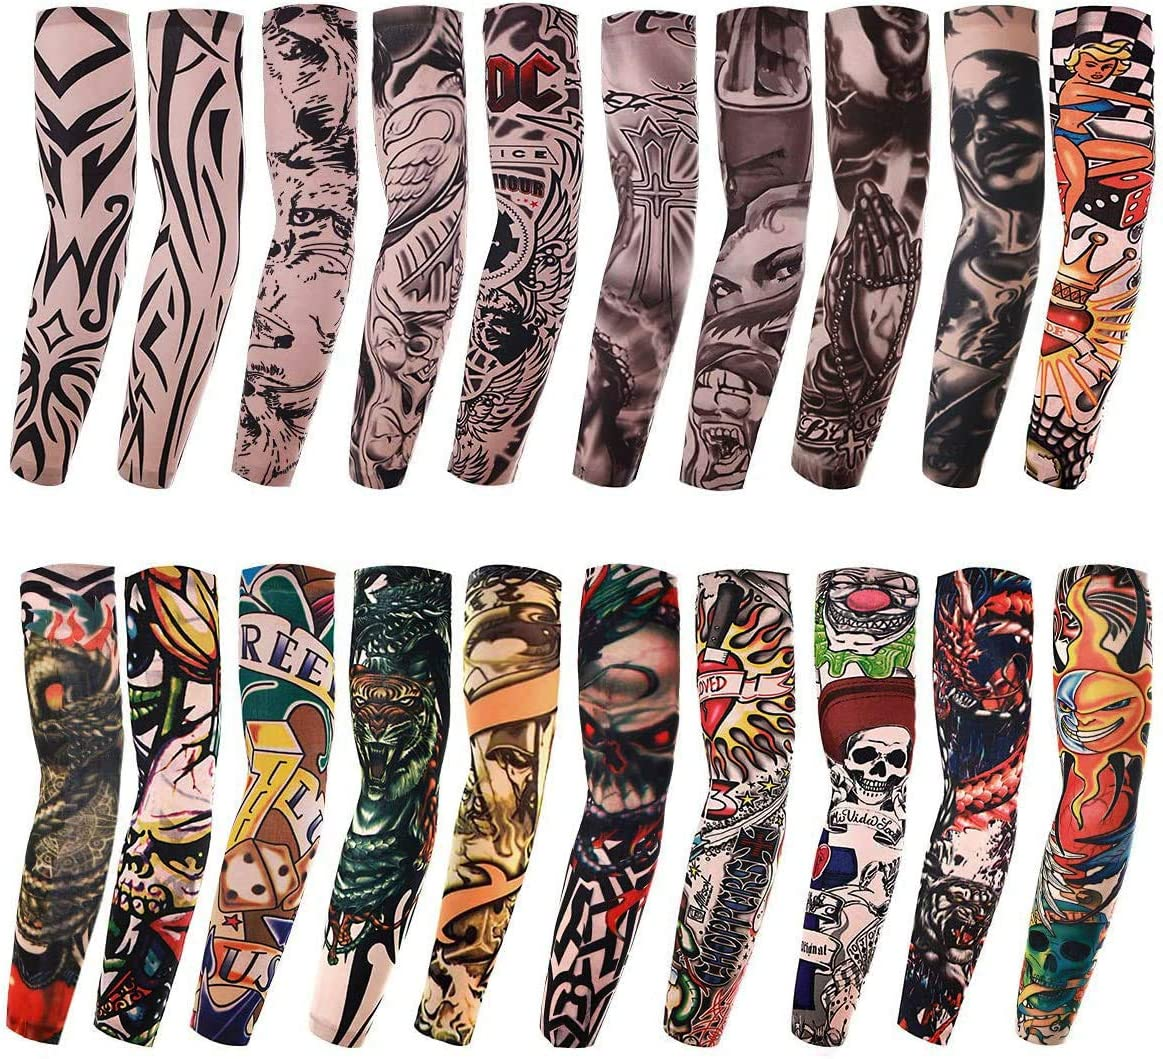 20 Piece Fake Temporary Arm Tattoo Sleeves - Tigers, Skulls, Tribal, Heart designs and more